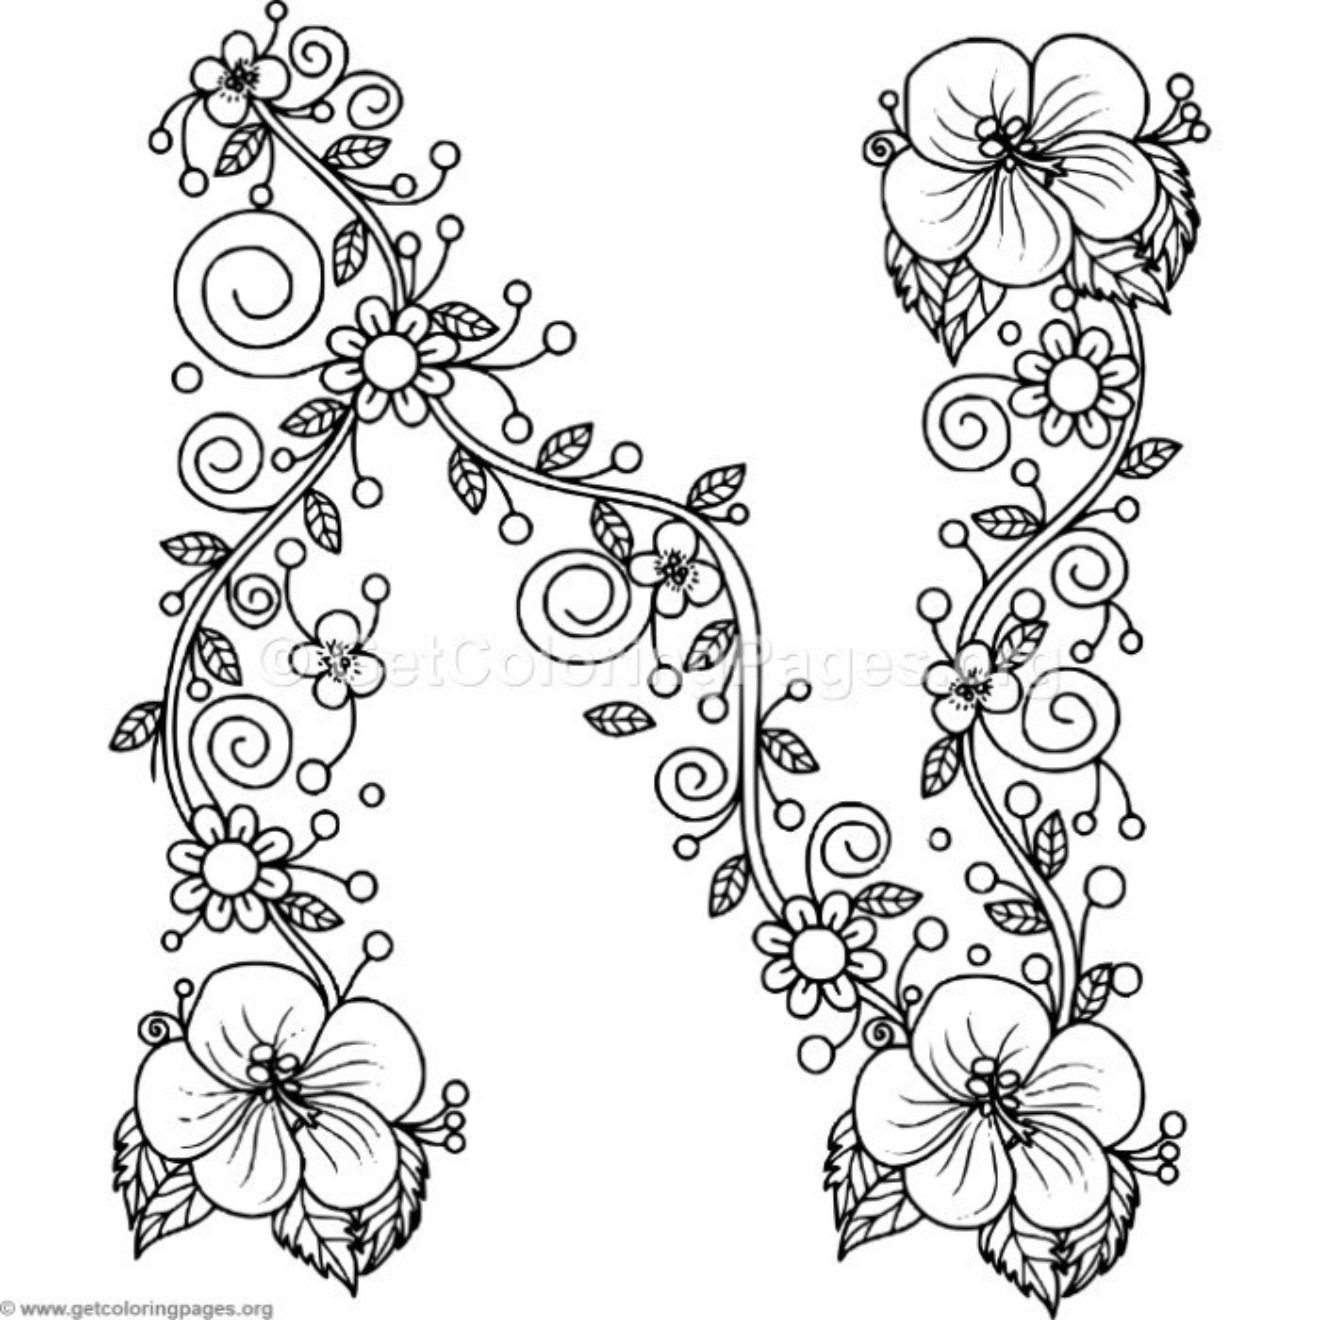 Floral Alphabet Coloring Pages Page 2 Getcoloringpages Org Flower Coloring Pages Alphabet Coloring Pages Coloring Letters